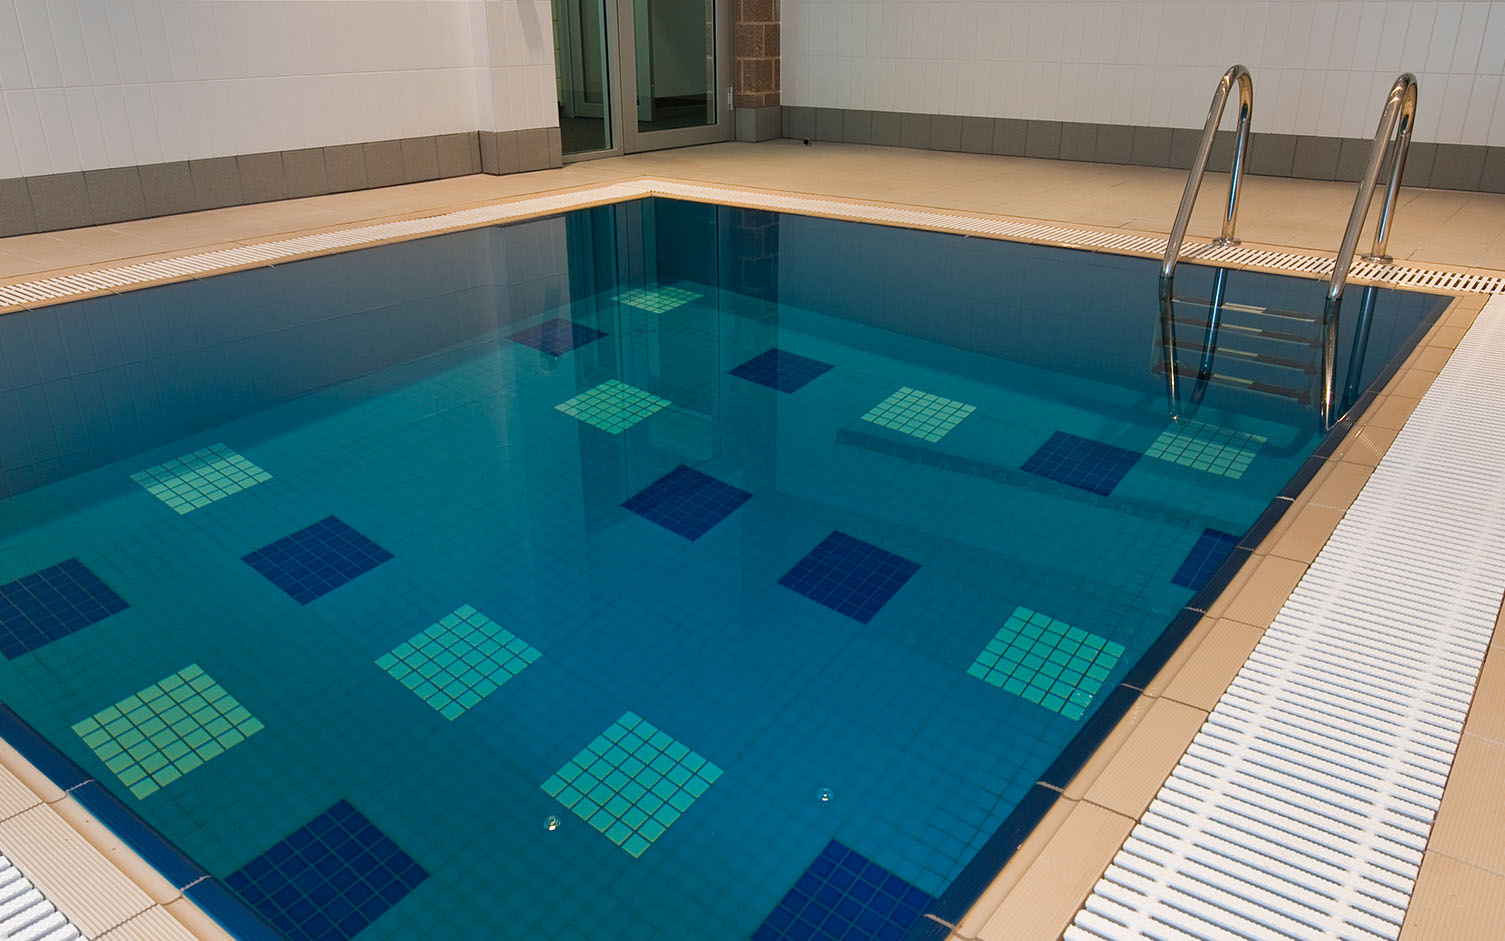 https://ggtiling.com.au/wp-content/uploads/2016/06/Adelaide-Football-Club-G-G-Tiling_0003_Adelaide-Football-Club-pool-surround-only.jpg